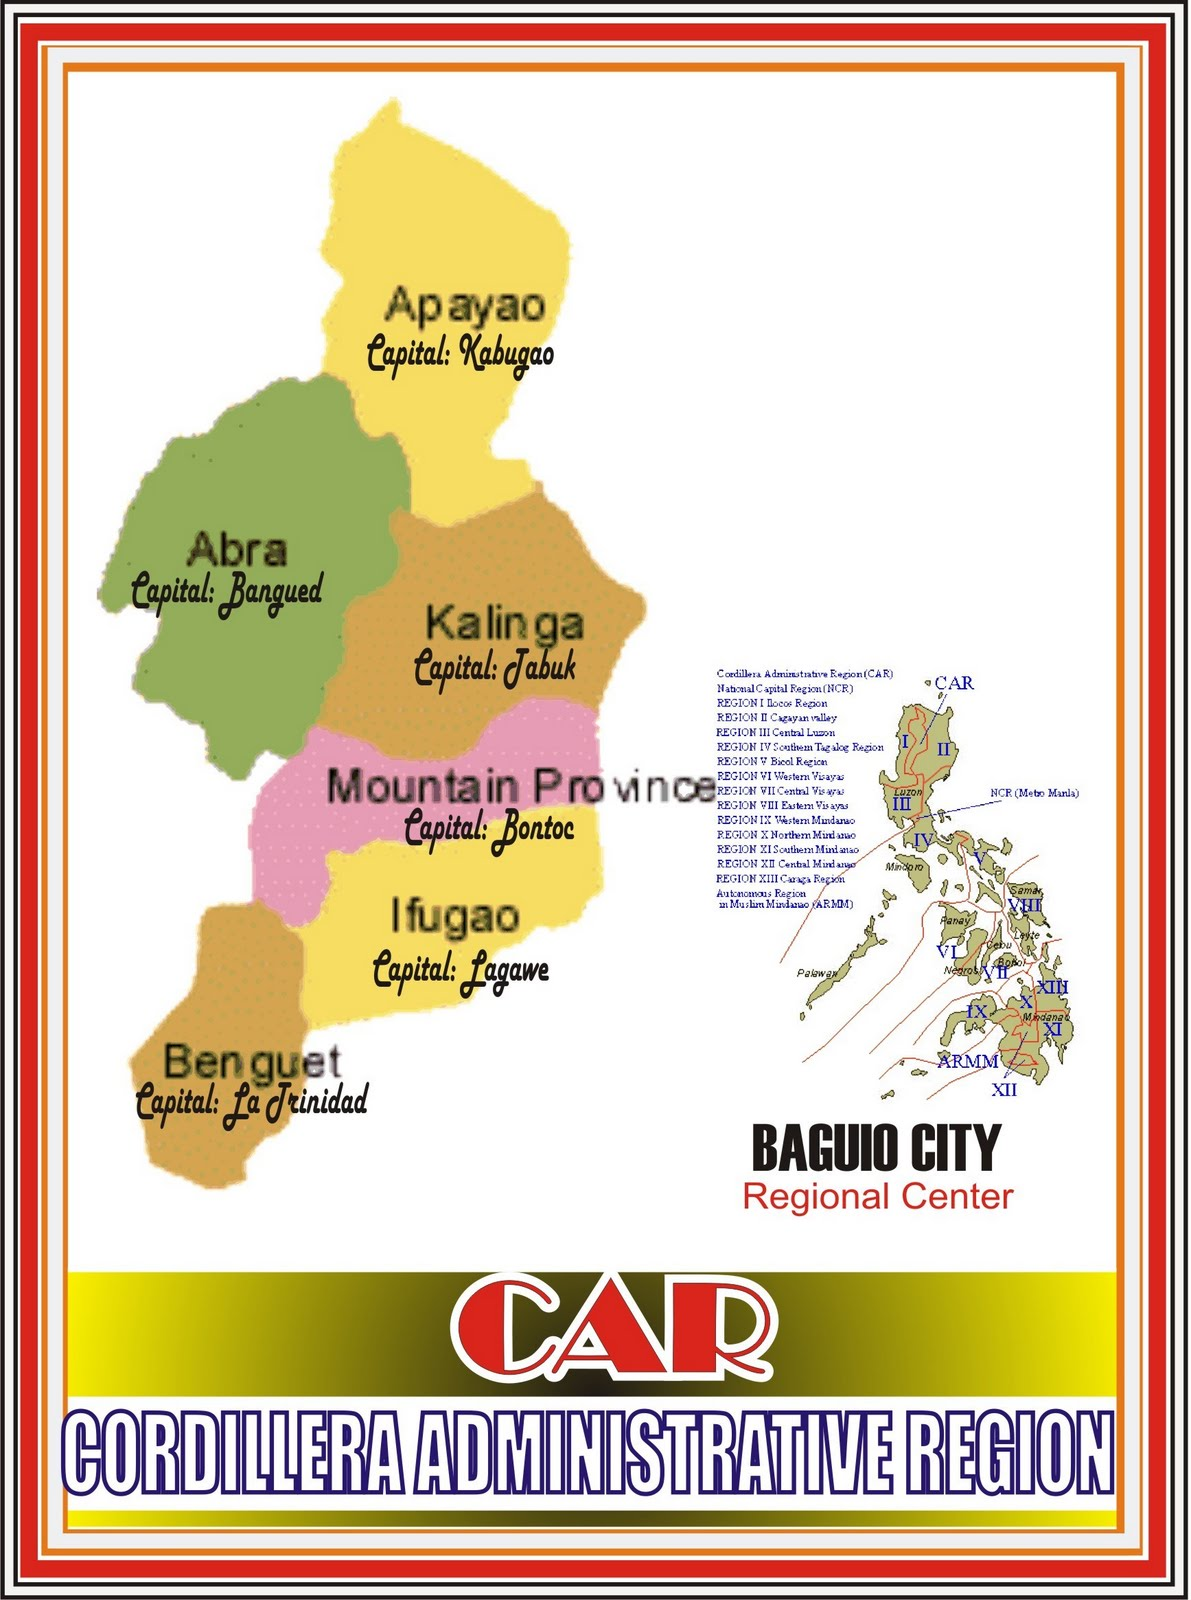 caraga region literature This tradition of tagalog literature has been bequeathed upon the national consciousness of the filipinos all over the philippines other katakata deal with agassi (giants) like the baguinda iban hinda apu (baguinda and grand-father agassi) caraga region.